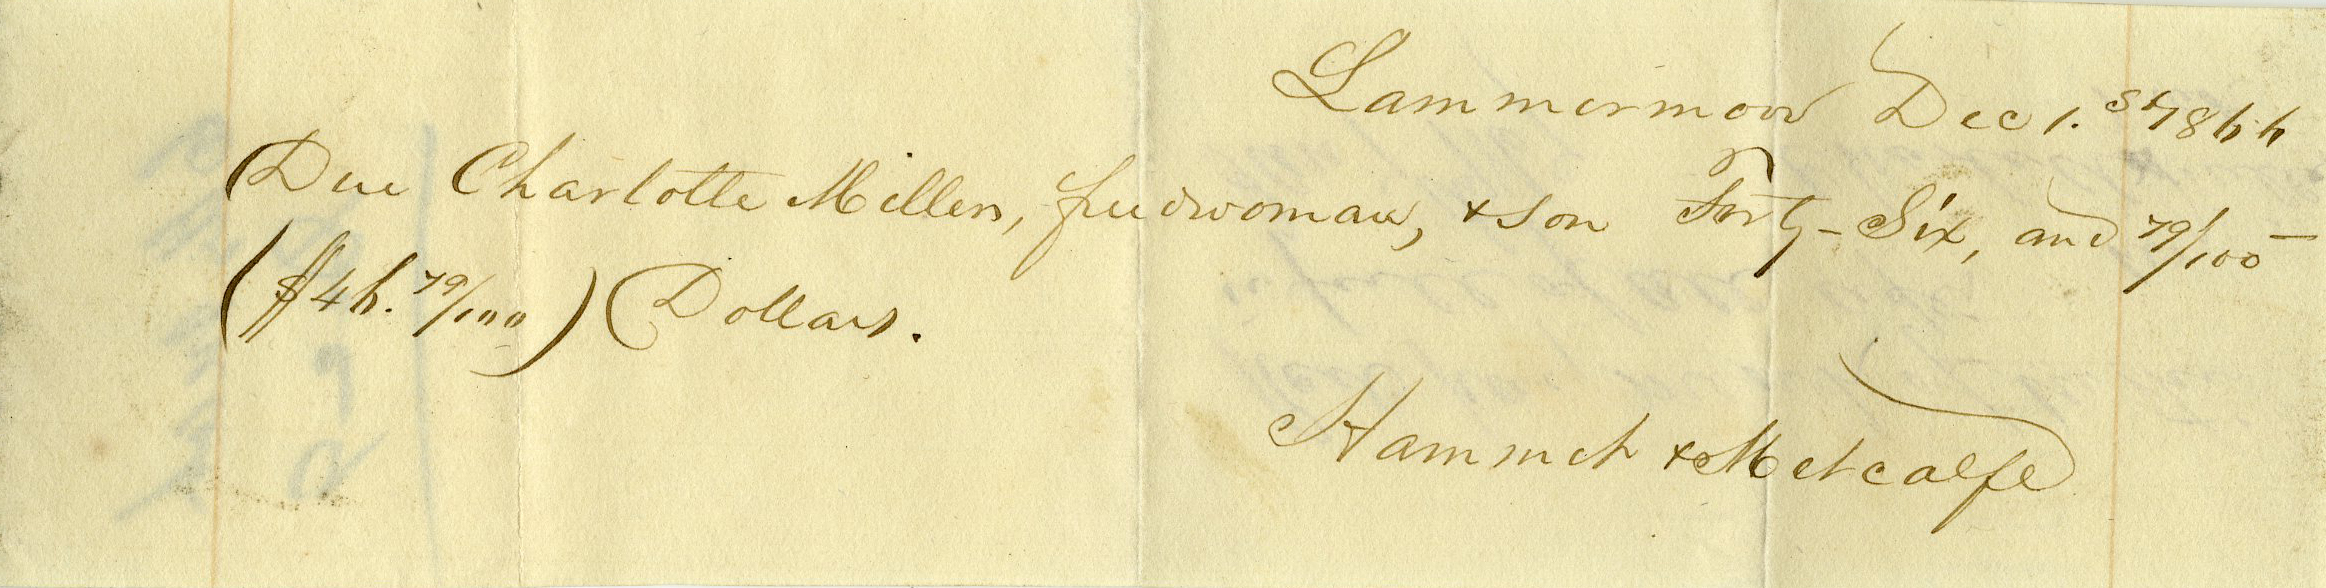 Voucher for wages due Charlotte Miller, freedwoman, by Lammermoor Plantation in 1866. Miller acknowledged receipt, by making her mark, on the reverse side of the slip.